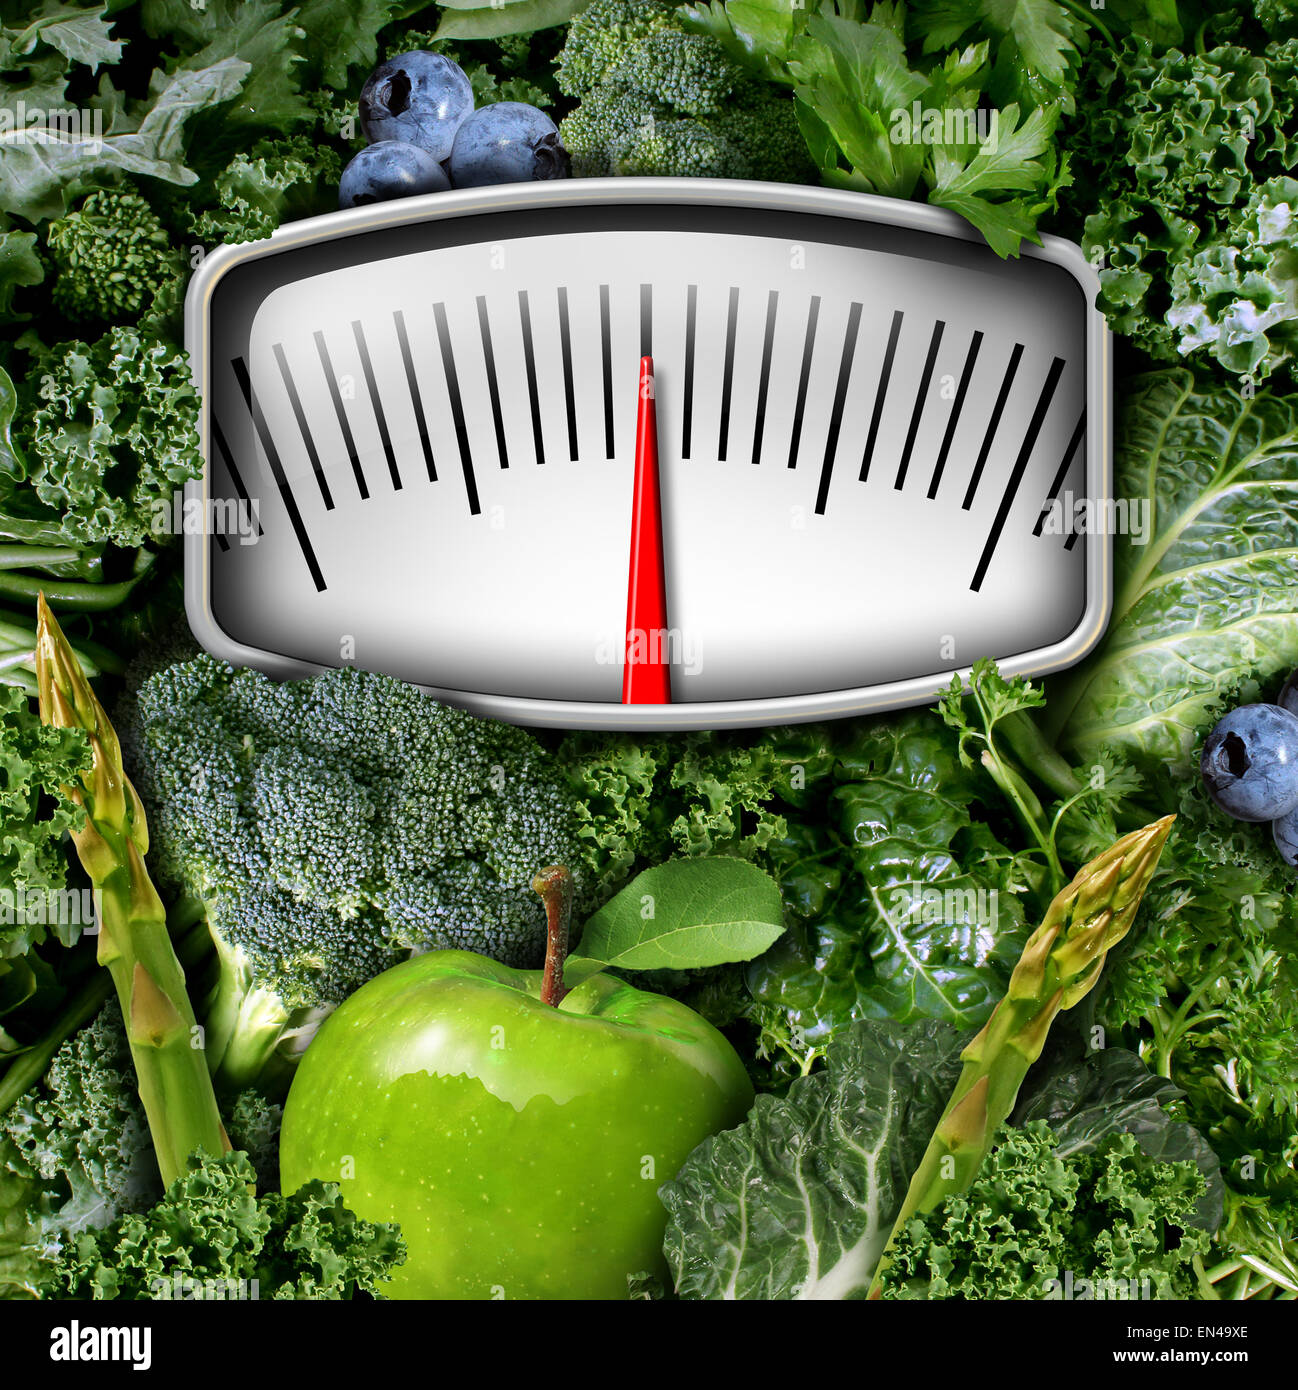 Fruits and vegetables weight scale concept as a group of natural food as broccoli apple blue berries and green leafy - Stock Image